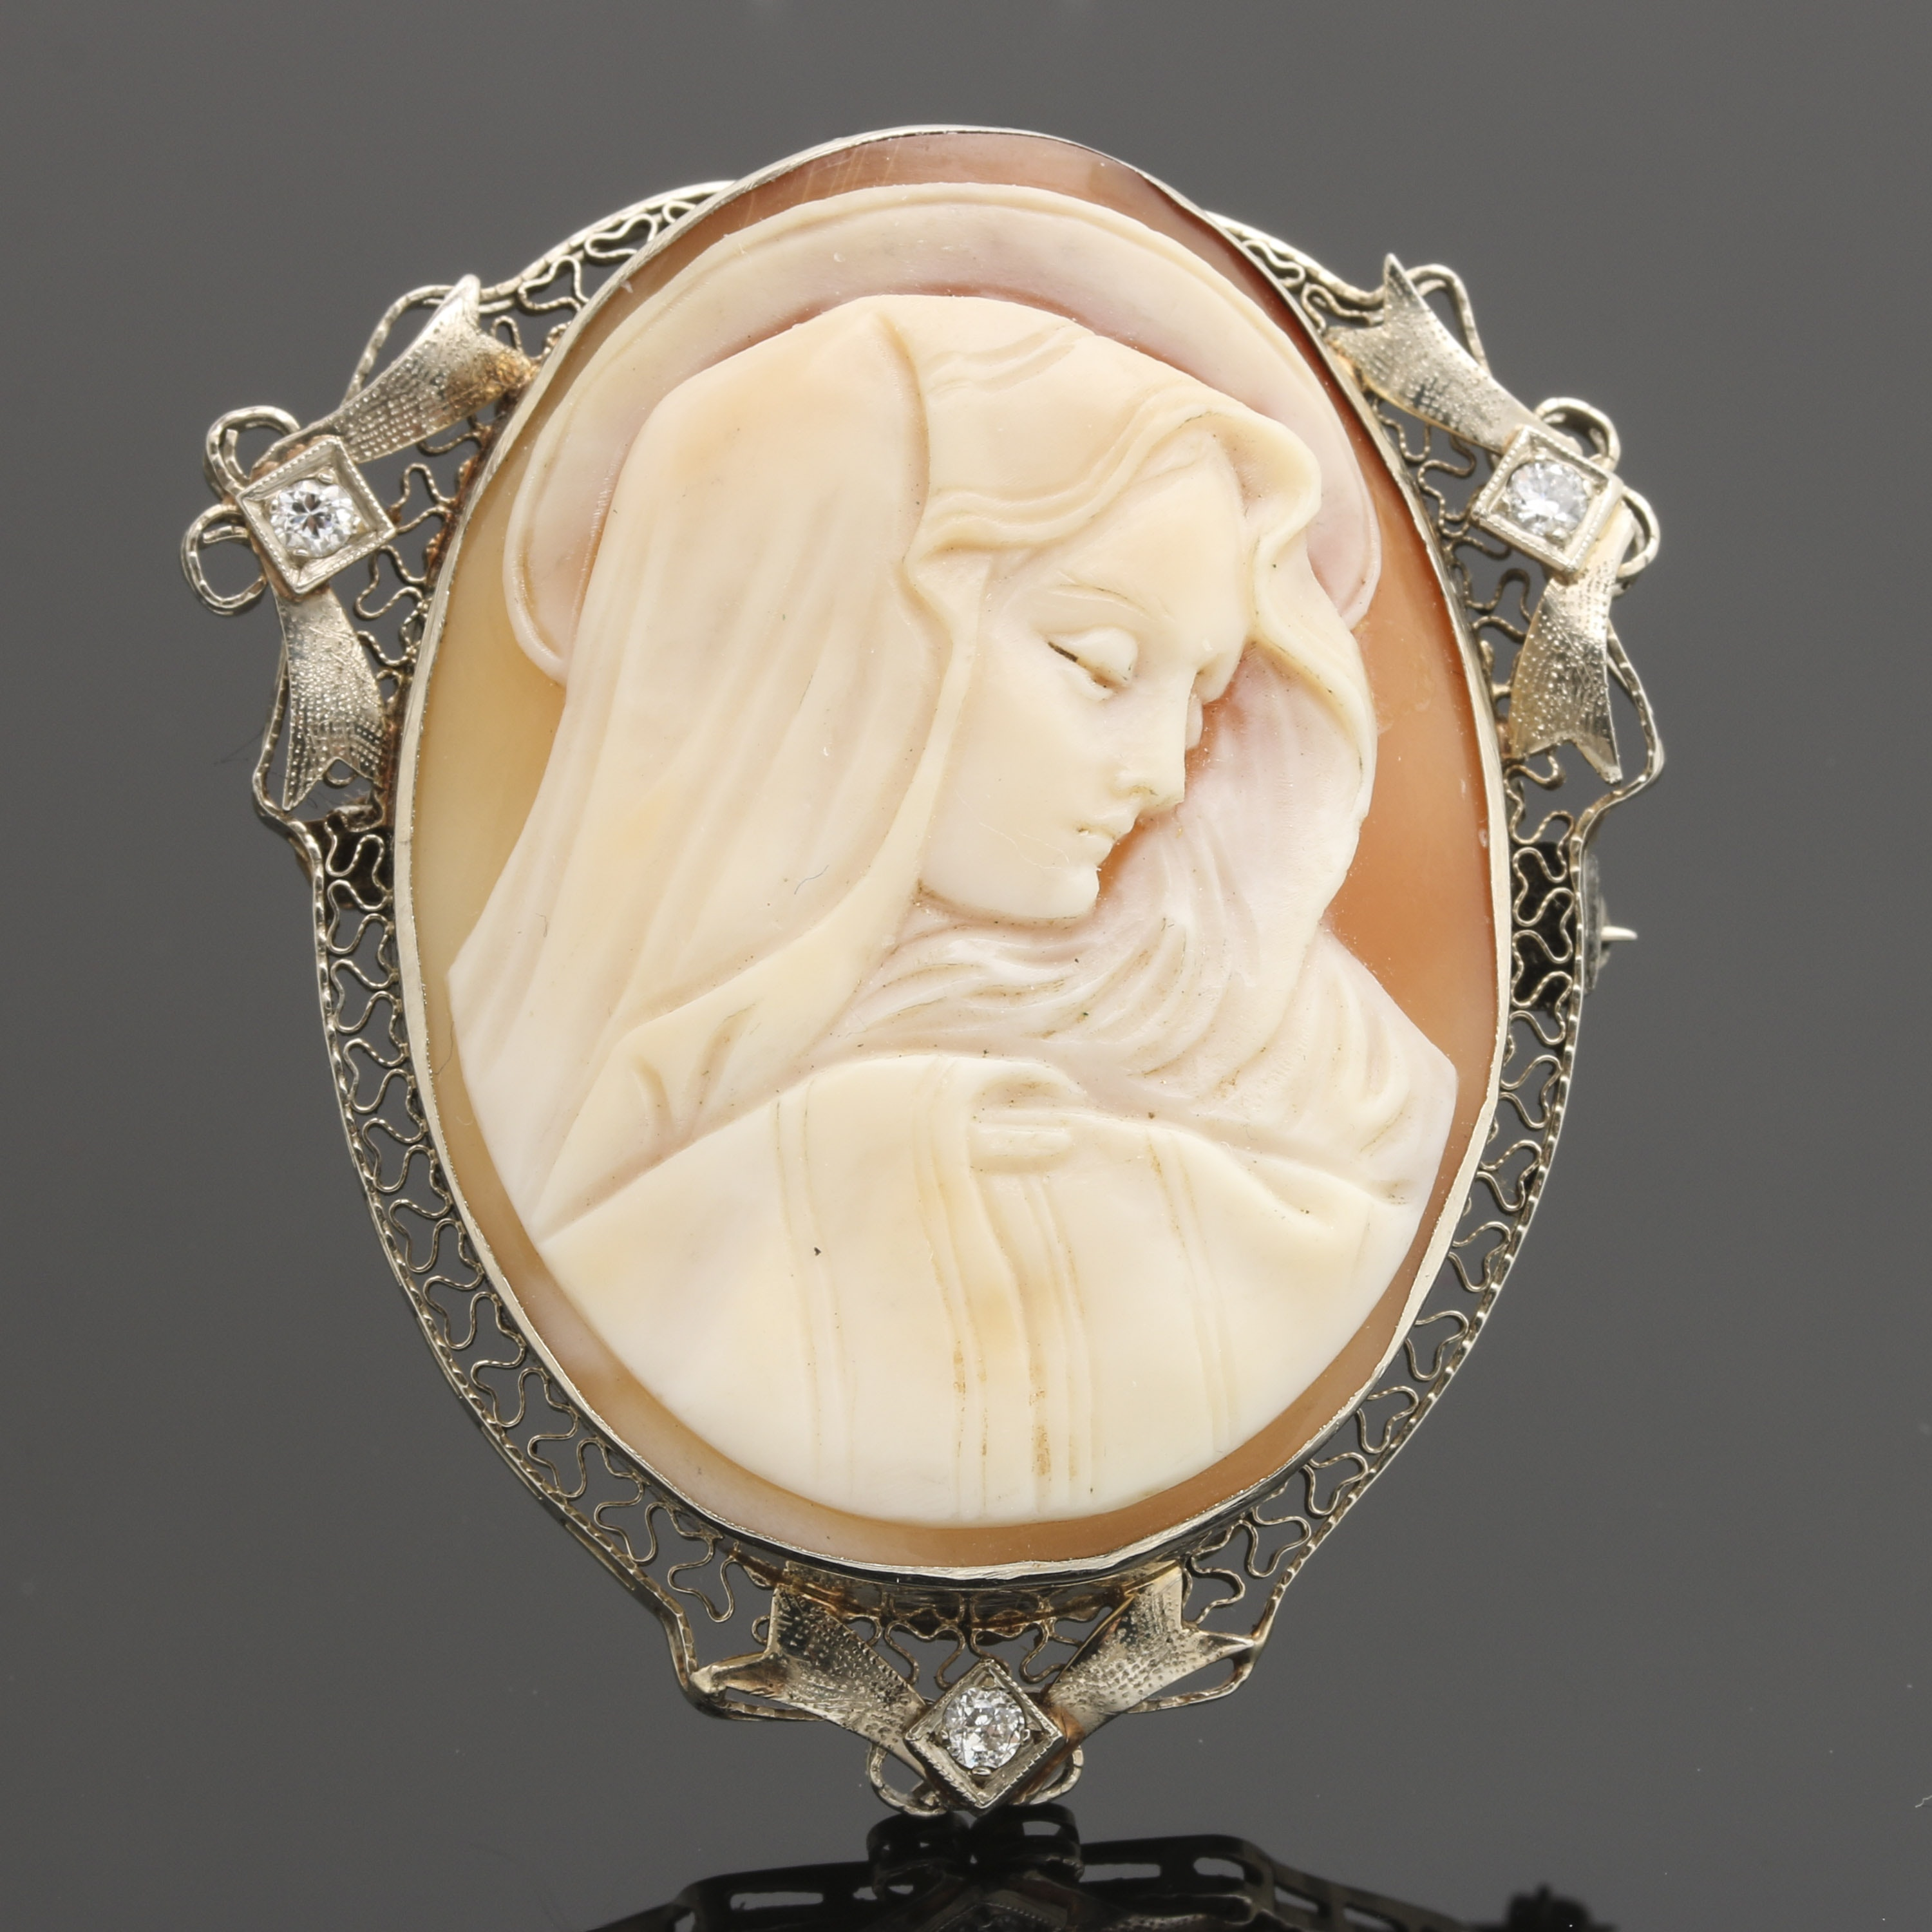 Vintage 14K Yellow Gold Carved Helmet Shell and Diamond Madonna Cameo Brooch